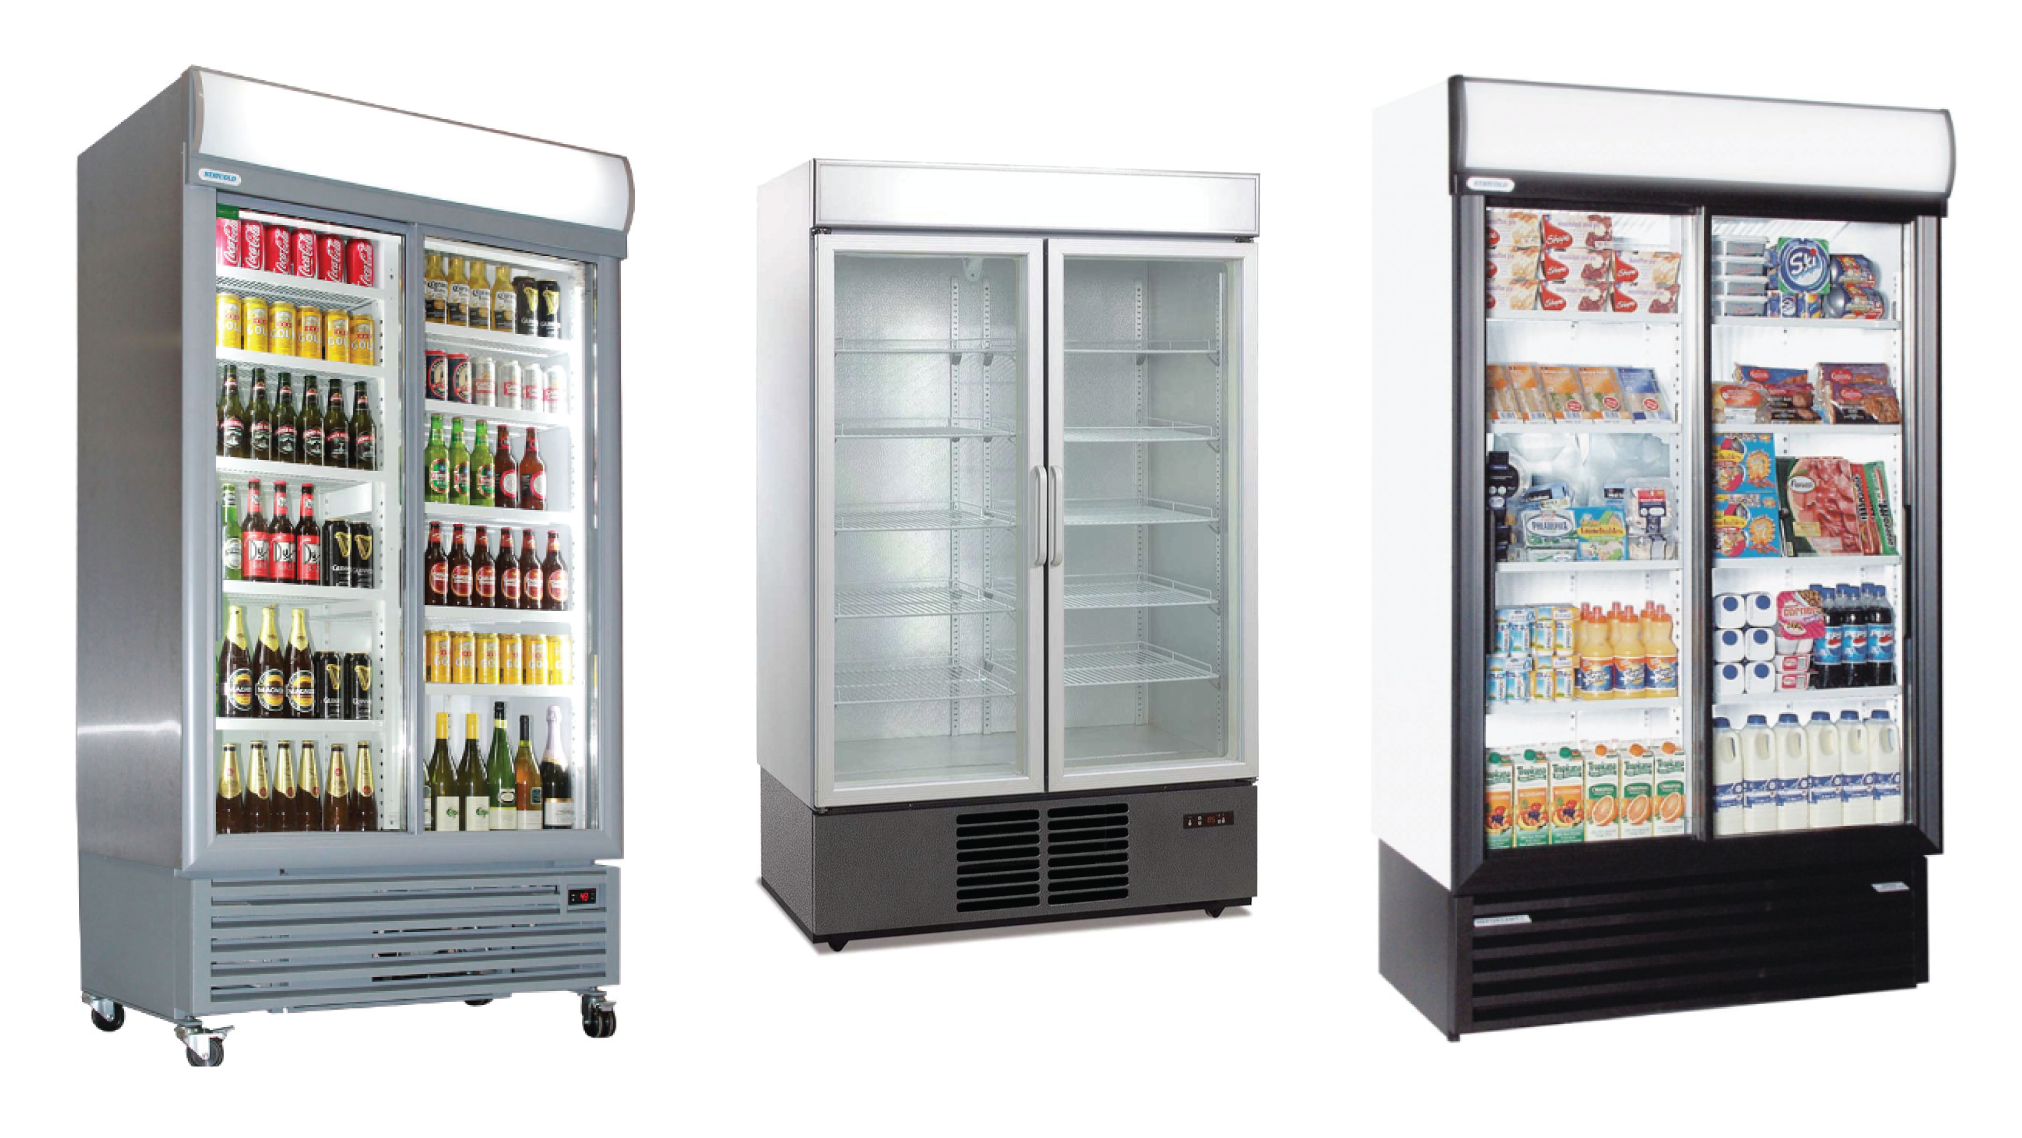 Double Glass Door Beverage Chiller In Bangladesh Call For Buy 01711 998626 Email Sales Nobarunbd Com 2 Door Double Glass Doors Beverage Fridge Glass Door